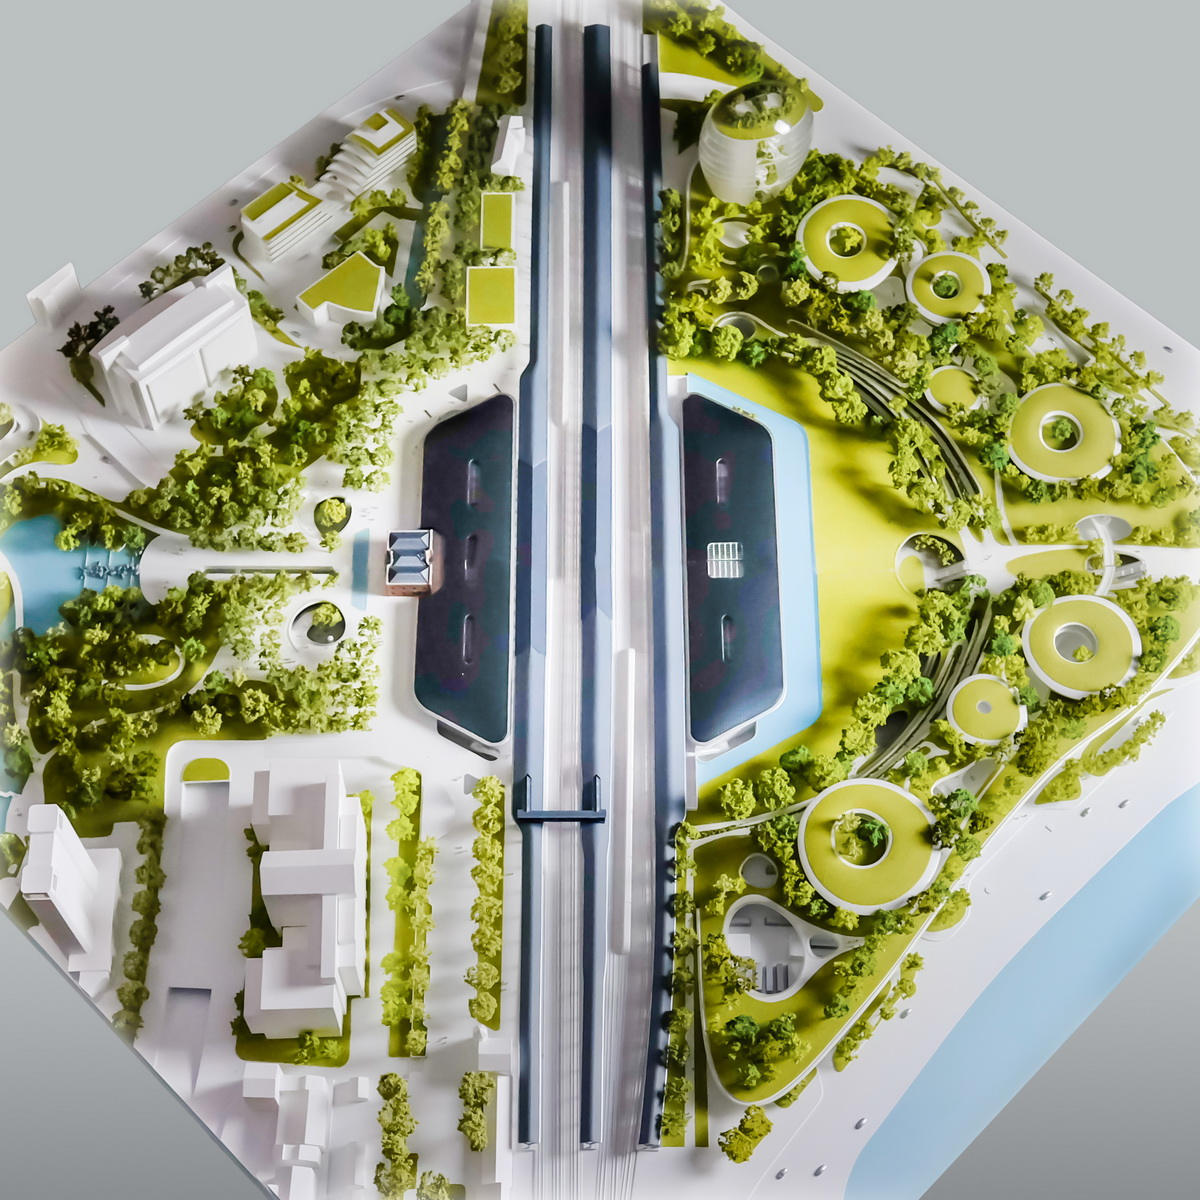 32_MAD_Jiaxing Train Station_Section_model_调整大小.jpg